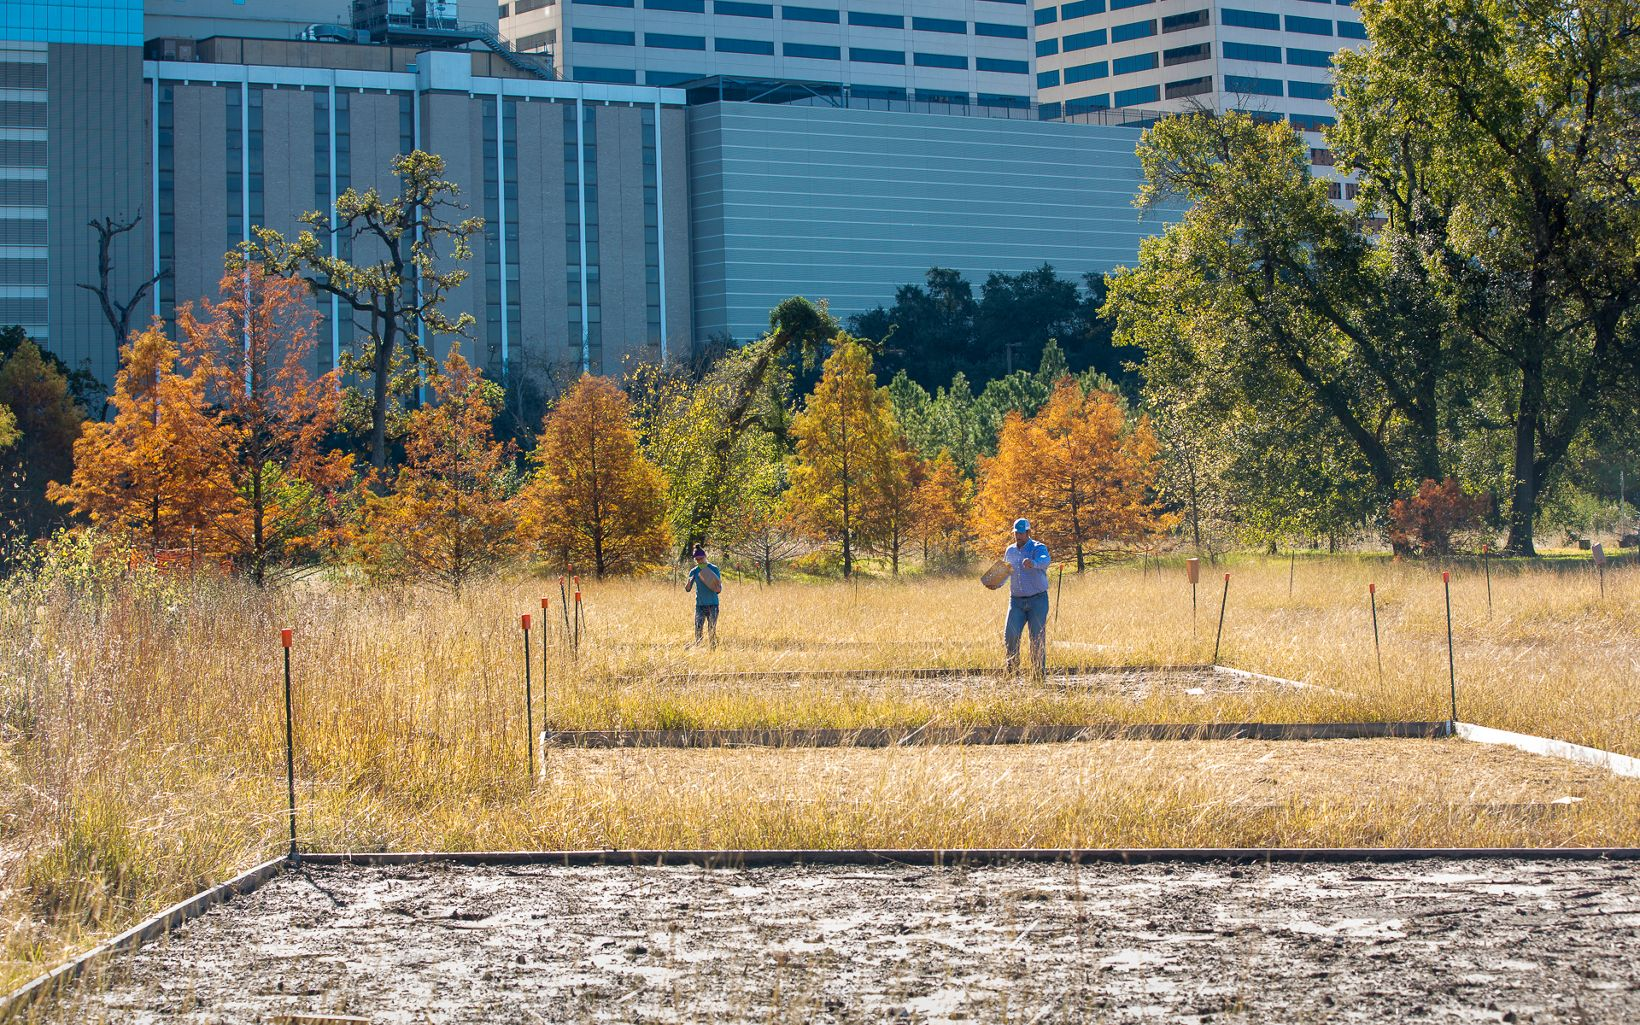 Restoration Projects Director Aaron Tjelmeland plants native seeds at Rice University in Houston, Texas.